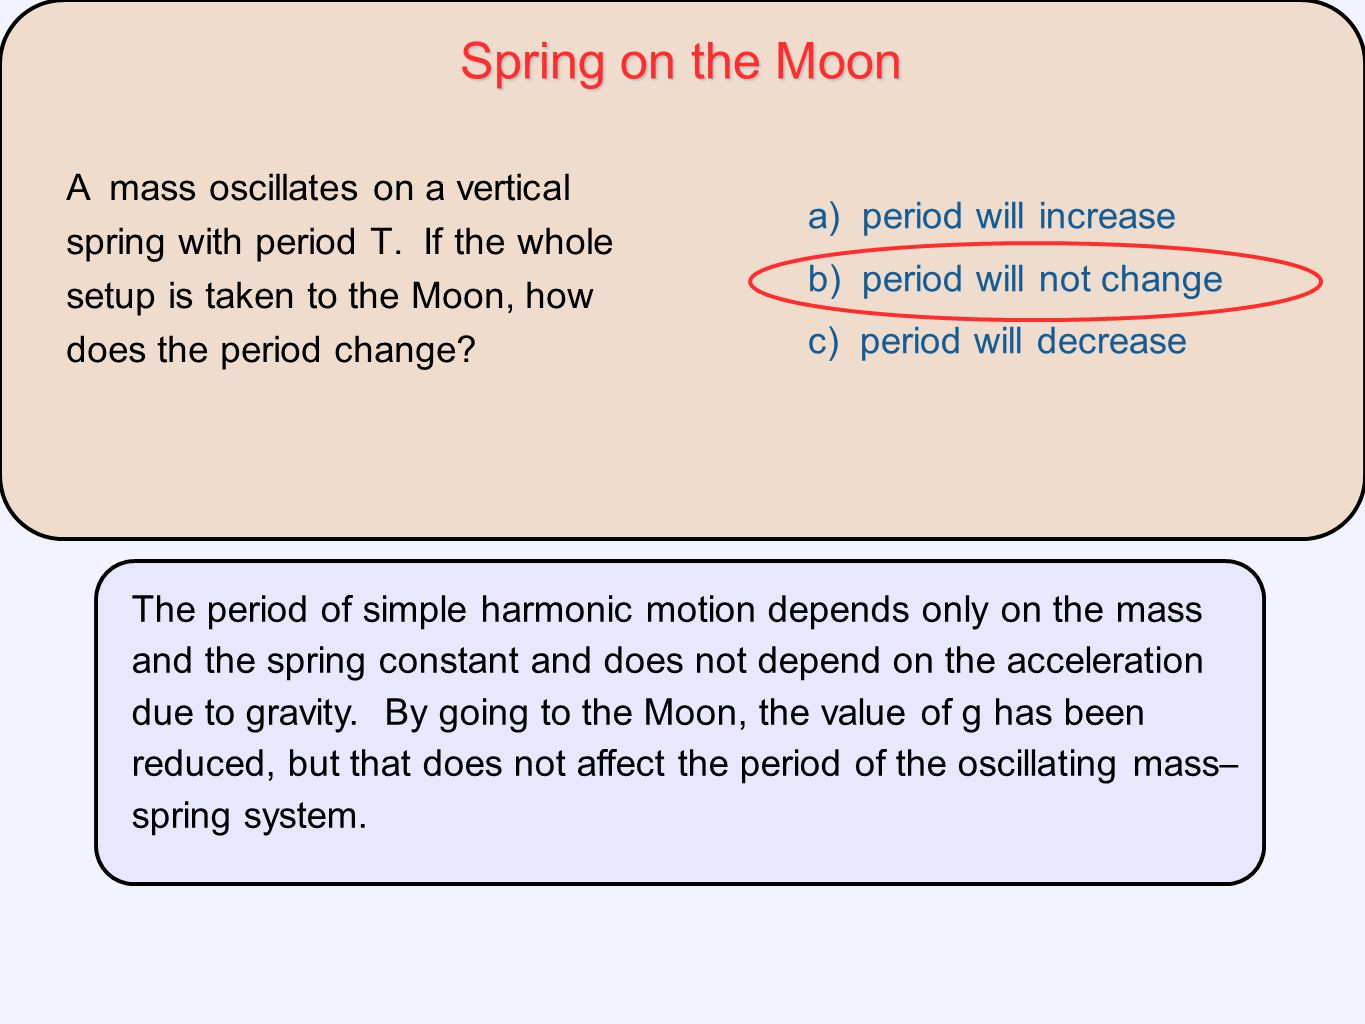 Spring on the Moon A mass oscillates on a vertical spring with period T. If the whole setup is taken to the Moon, how does the period change